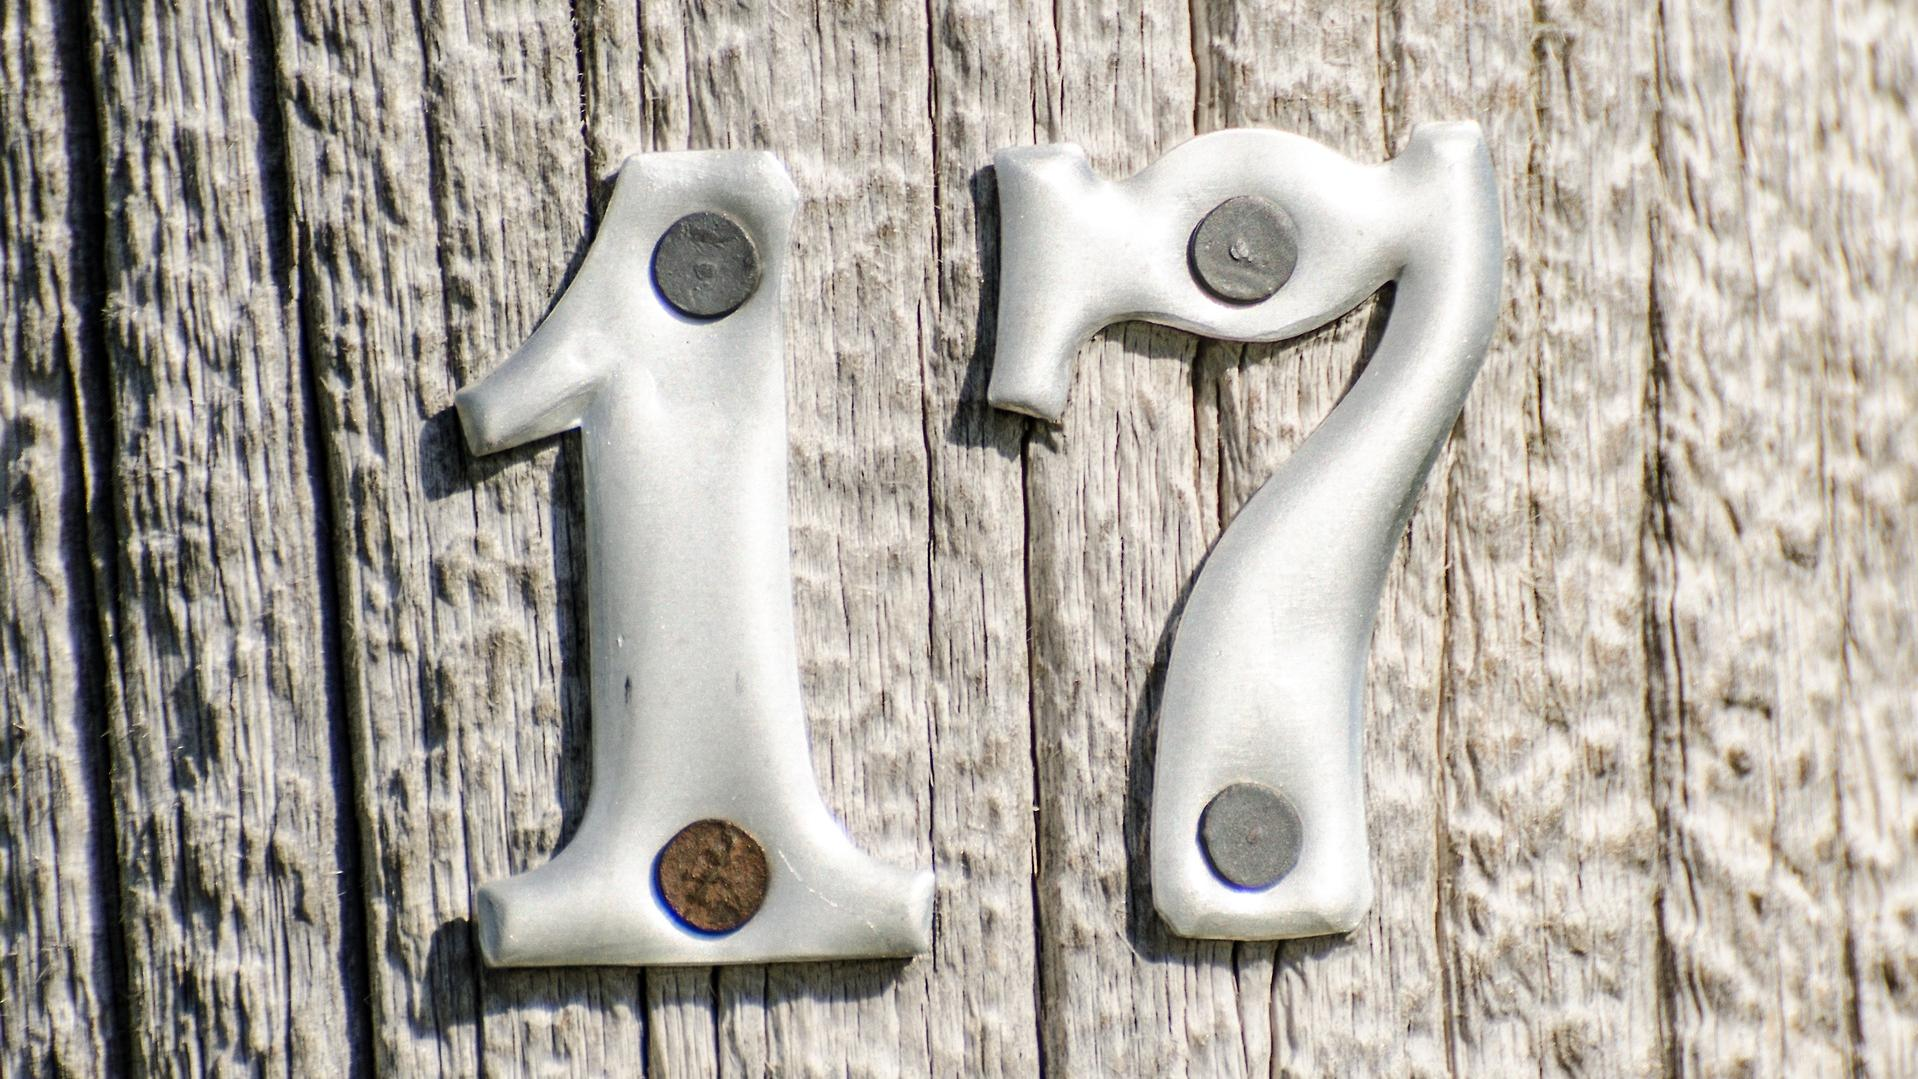 metallic number seventeen nailed to a wood surface